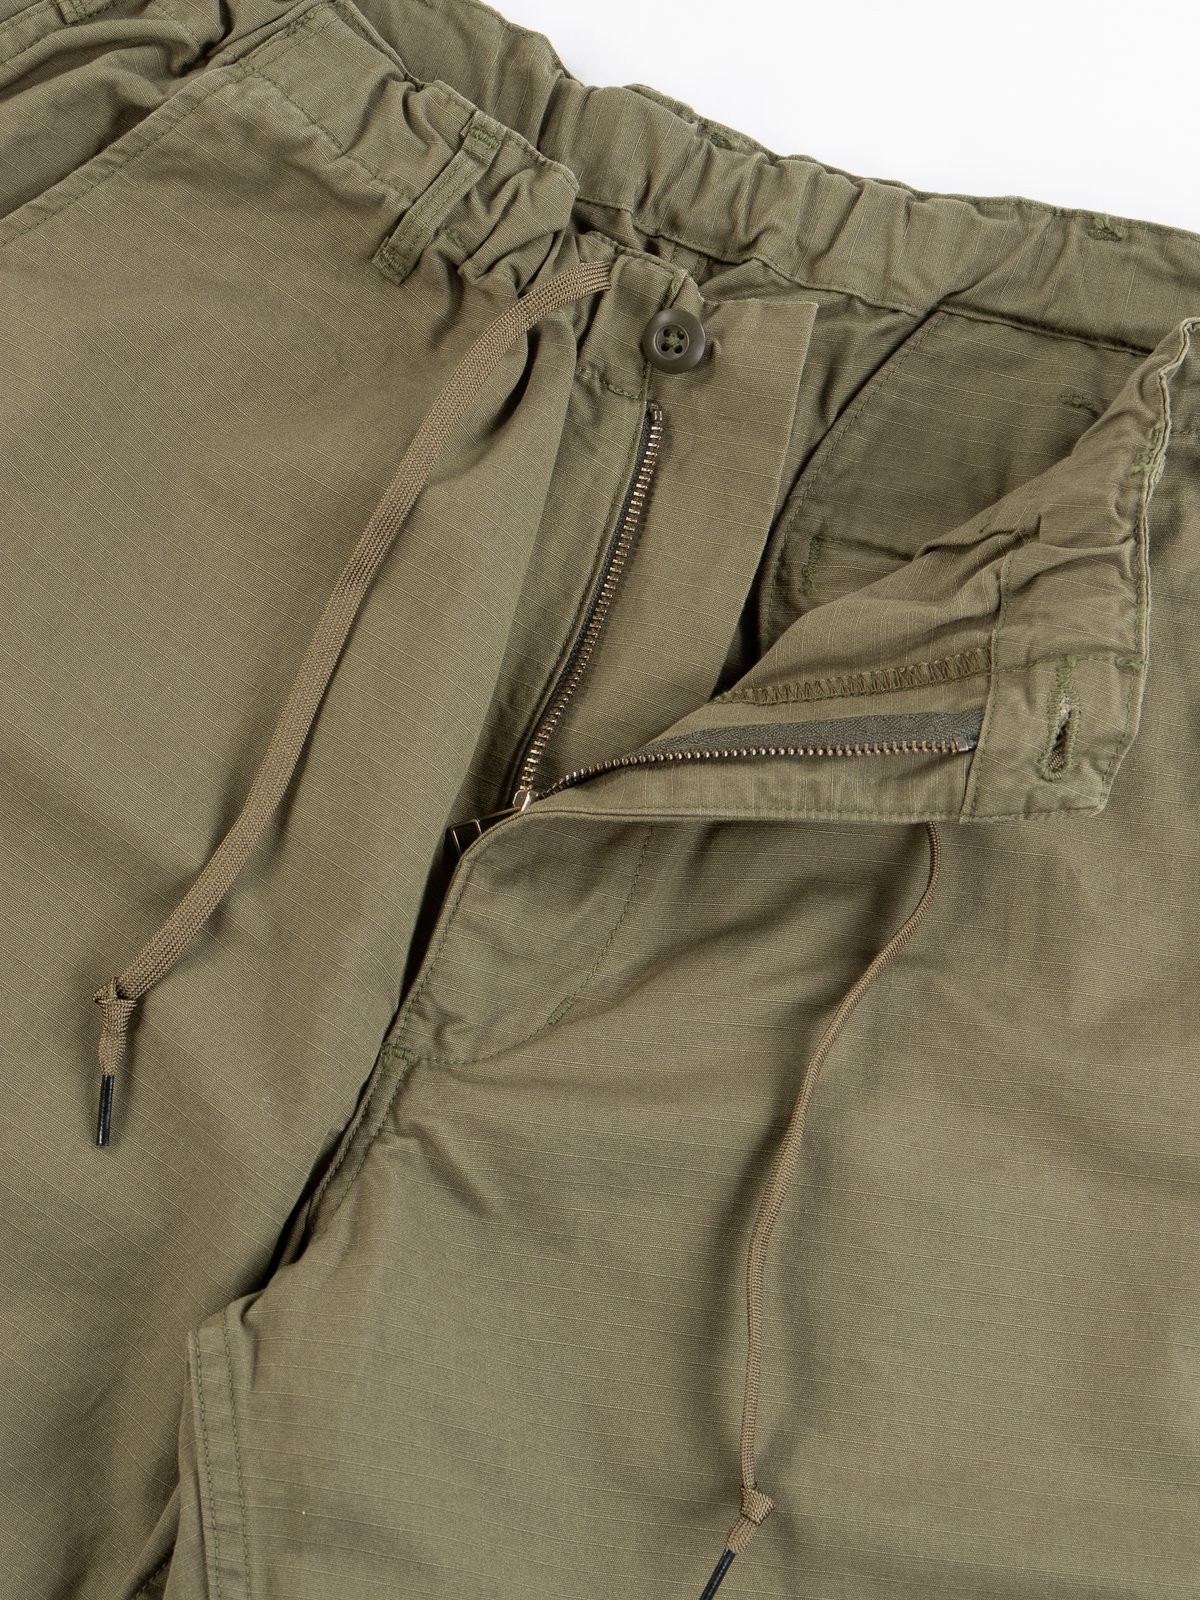 Army Green Ripstop TBB Service Pant - Image 8